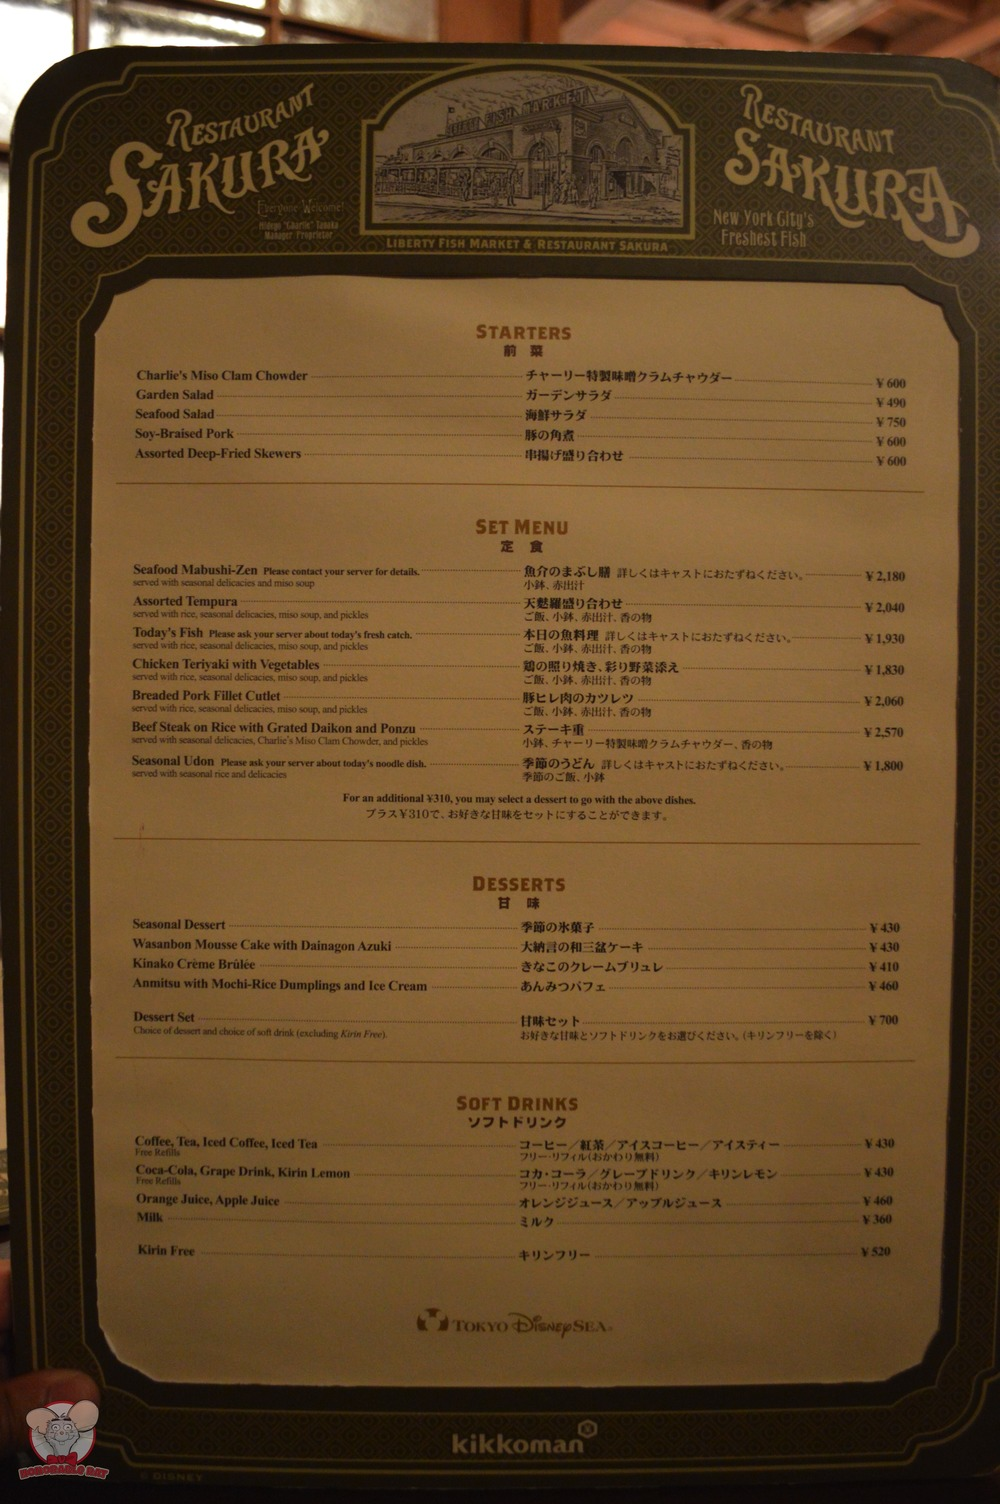 Restaurant Sakura Menu